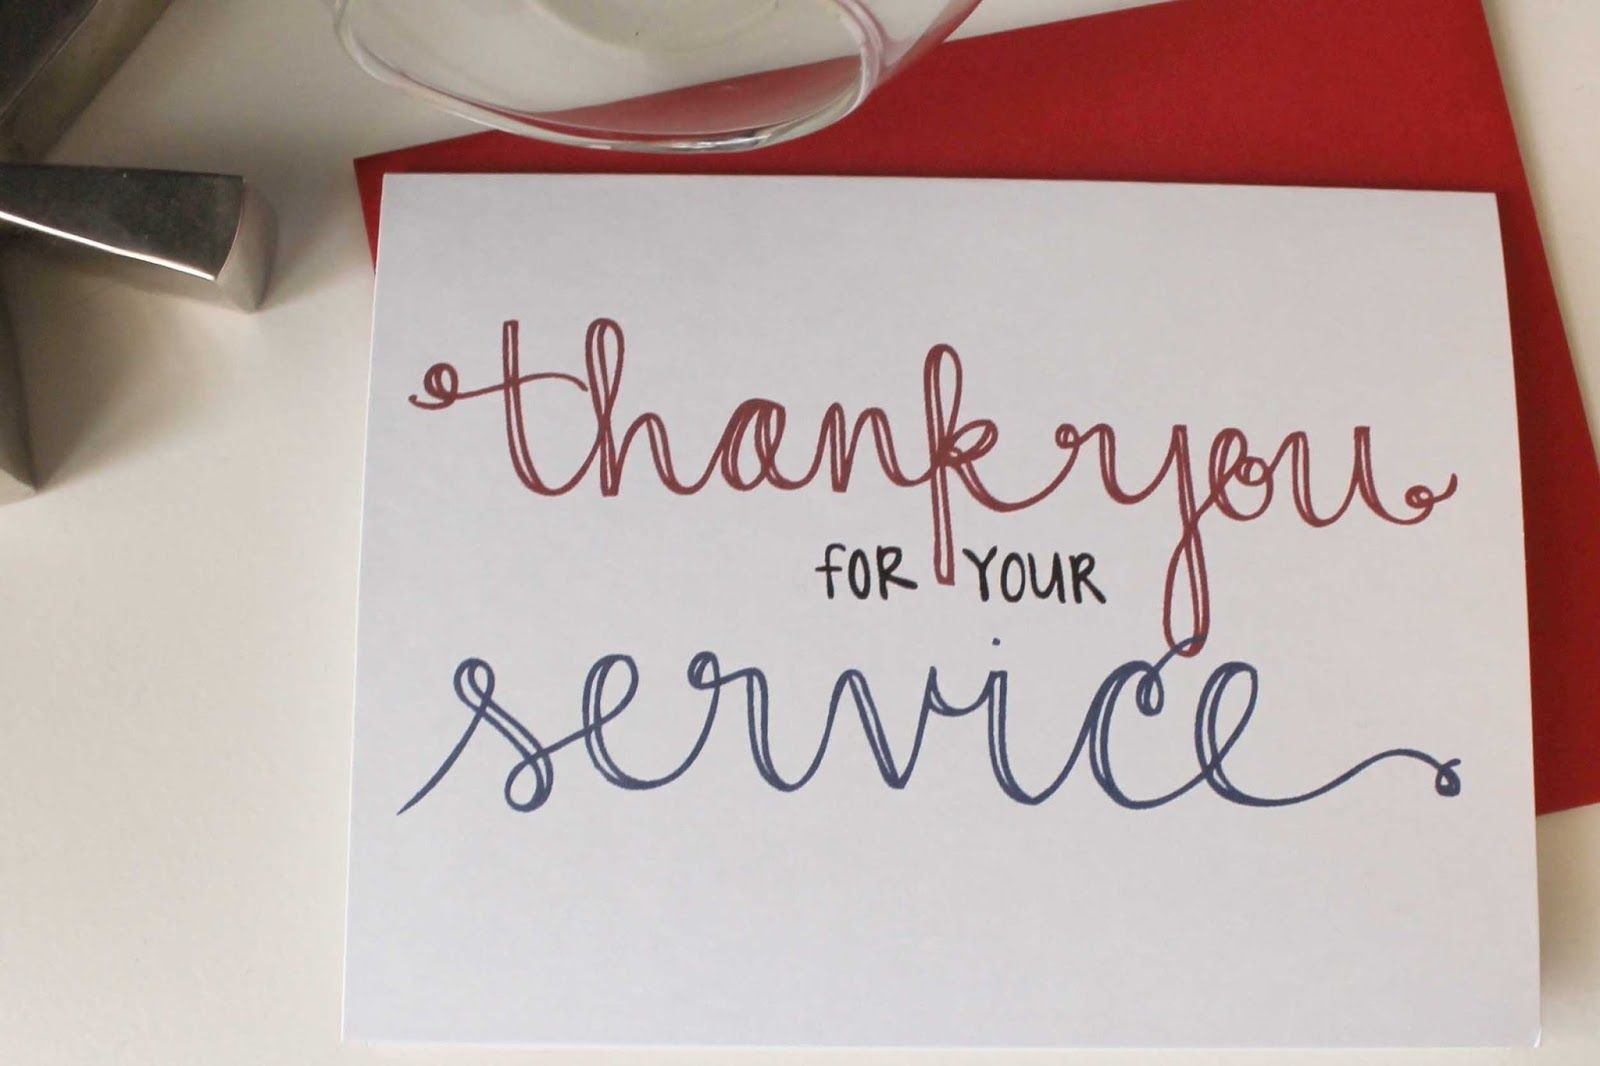 Send A Thank You Card To Our Troops   School   Veterans Day Gifts - Military Thank You Cards Free Printable